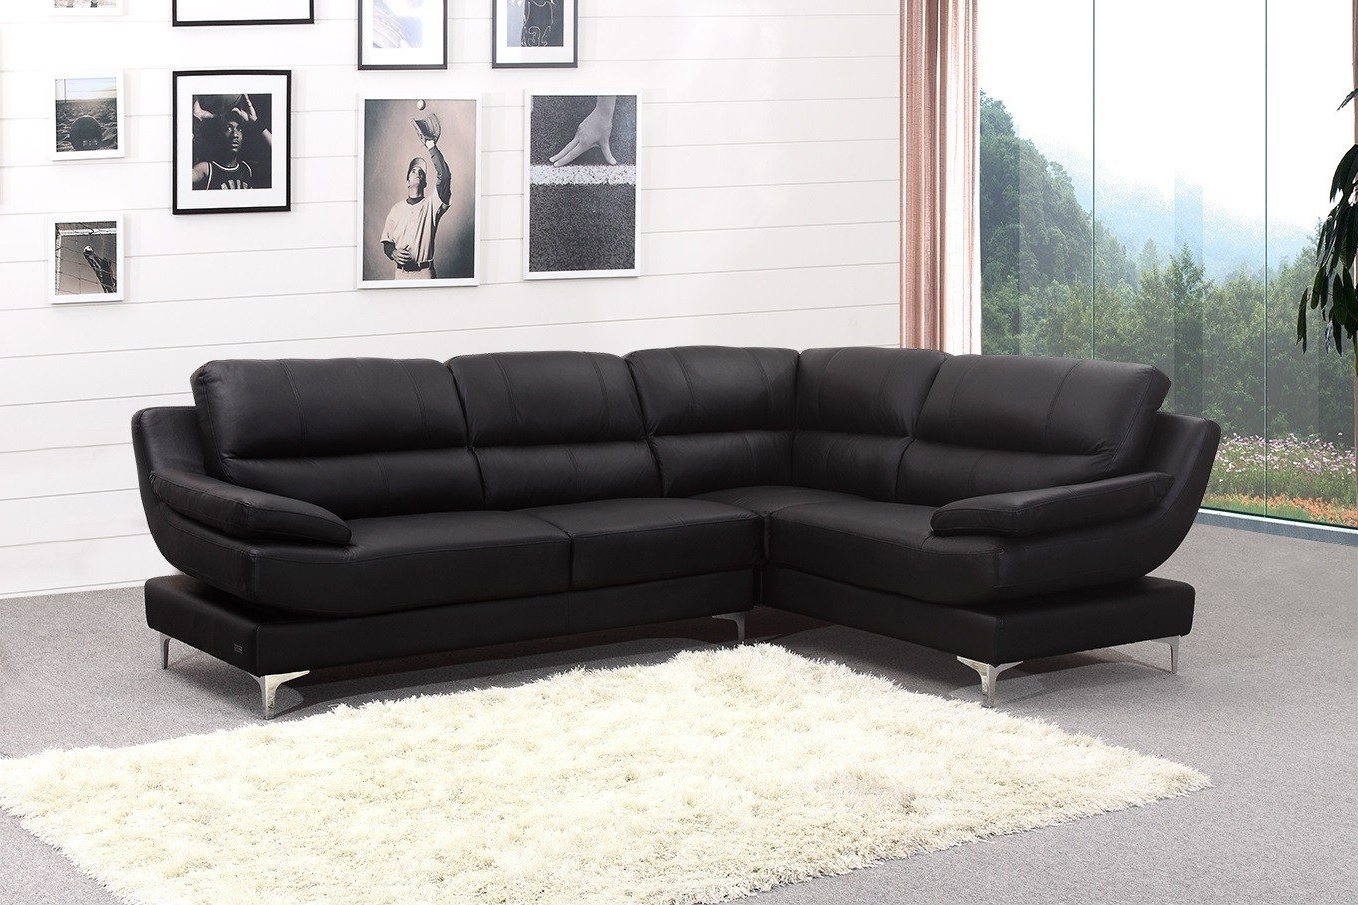 Leather Corner Sofas Within Well Known New Ideas Leather Corner Sofas With Corner Sofa Leather Brown (View 13 of 20)